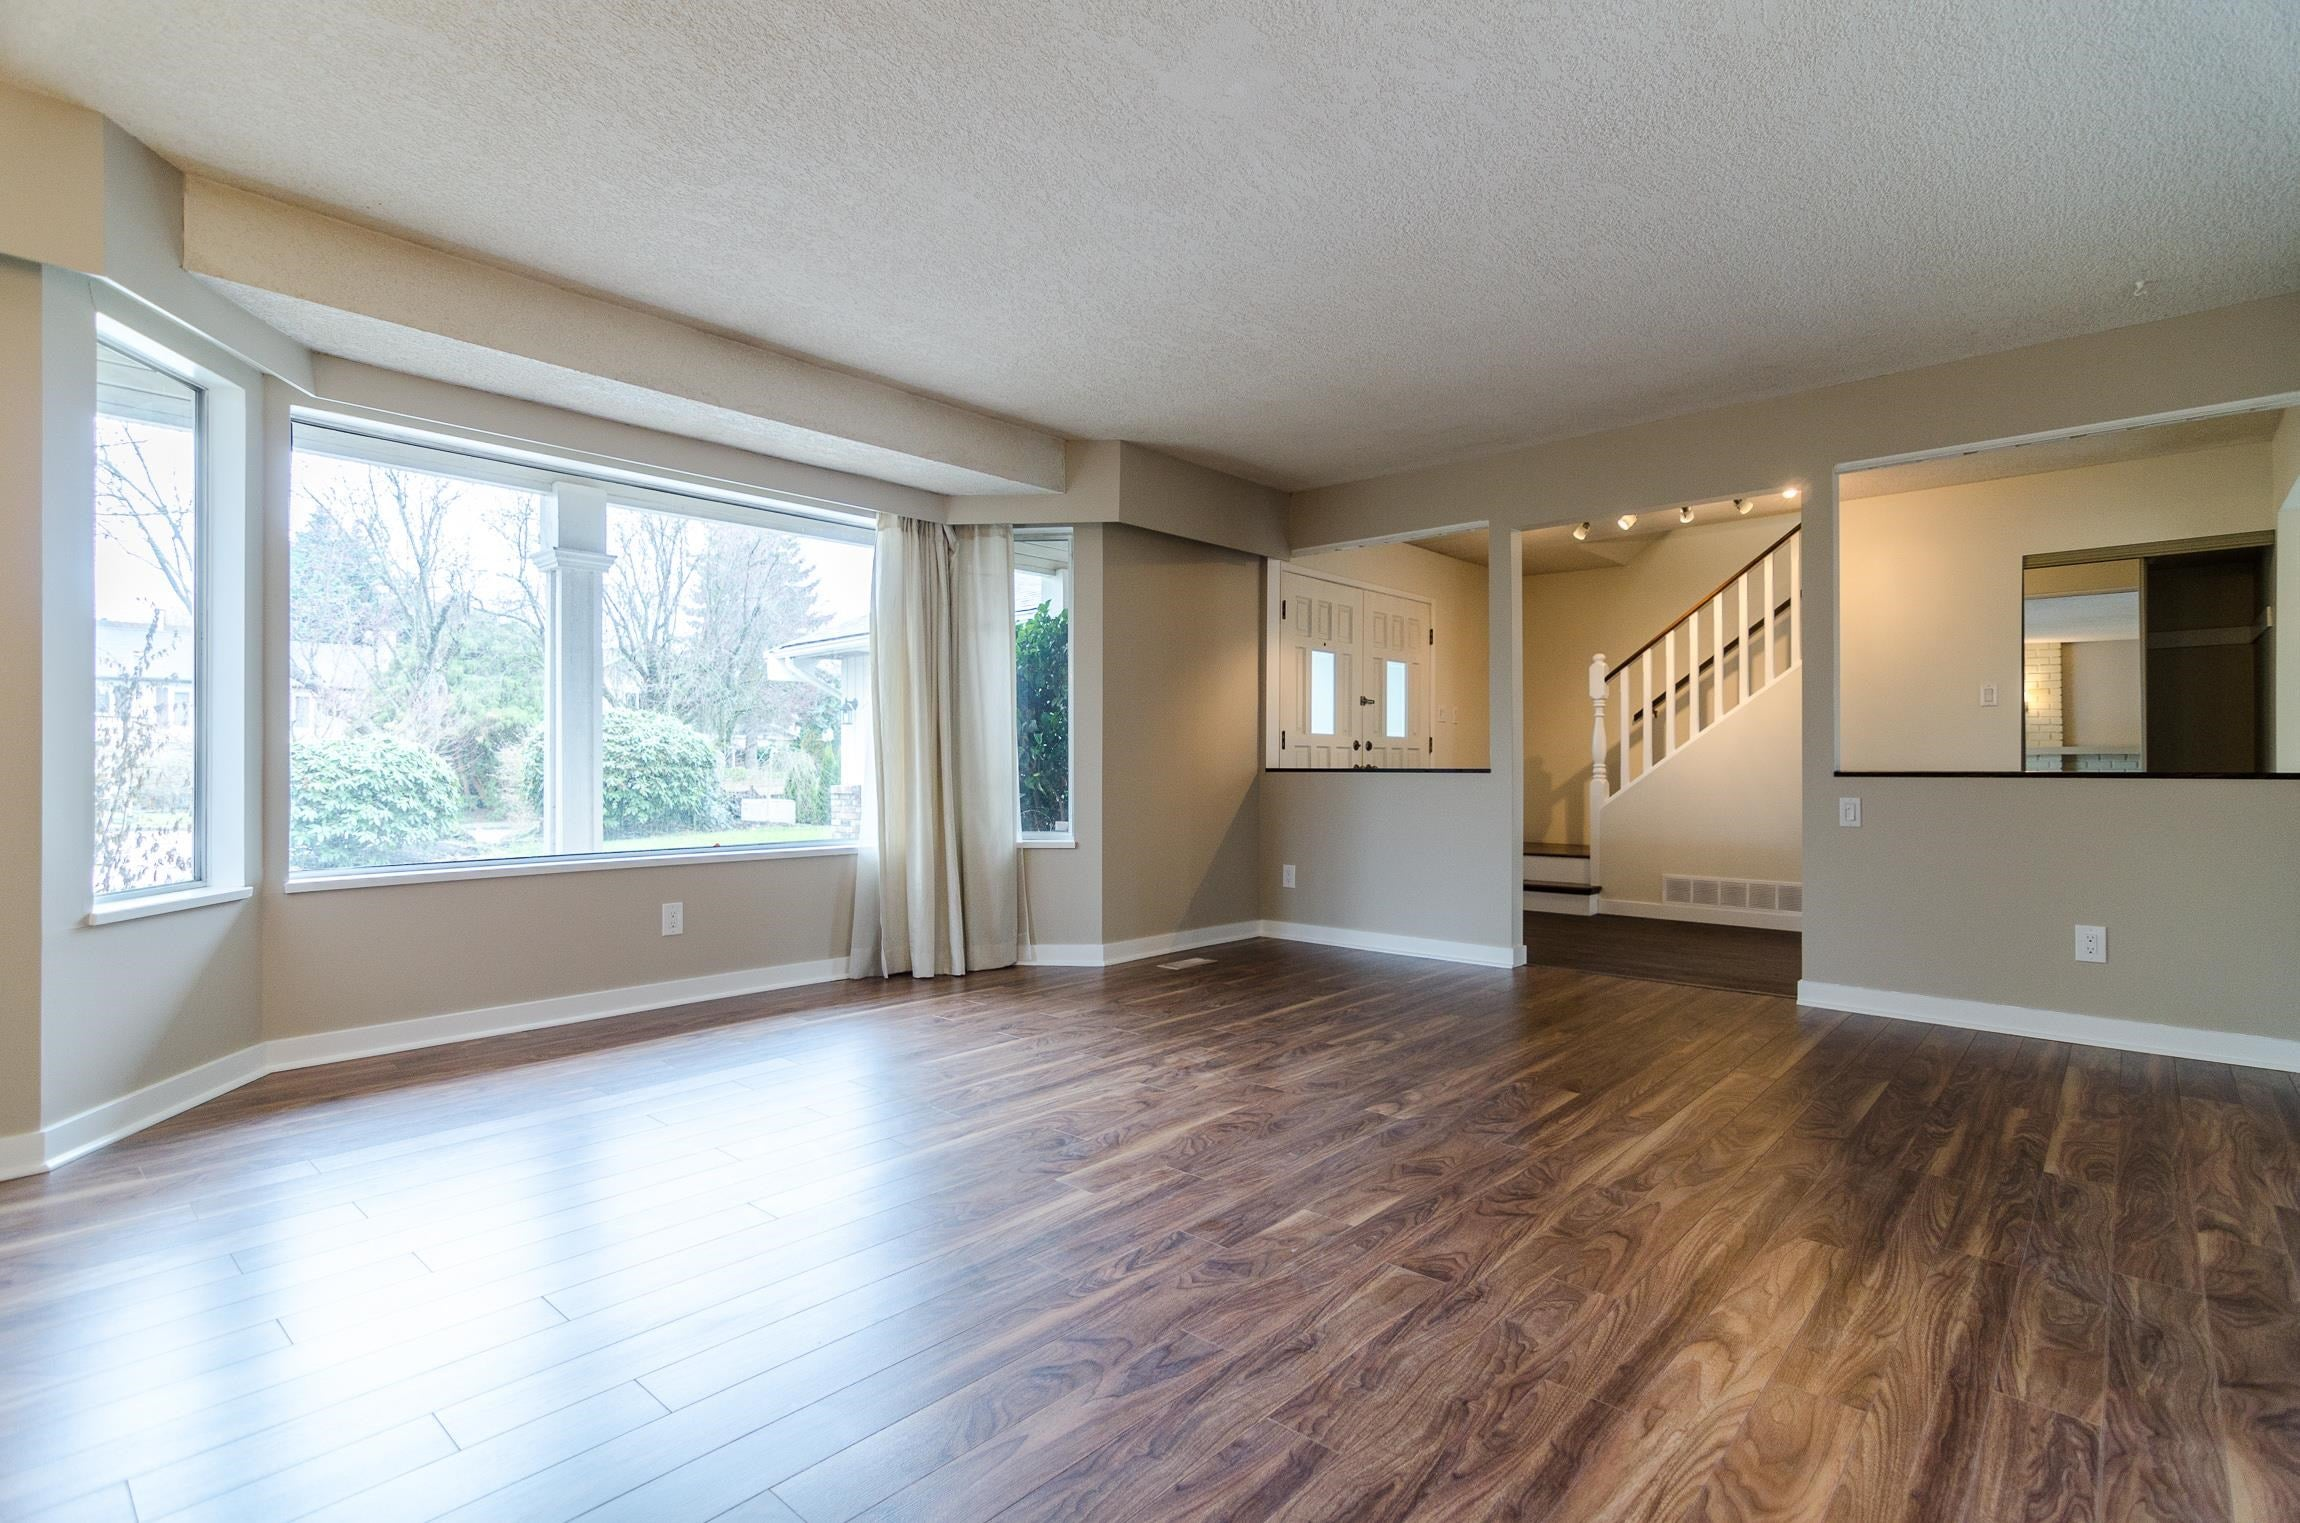 7831 MALAHAT AVENUE - Broadmoor House/Single Family for sale, 4 Bedrooms (R2625745) - #4